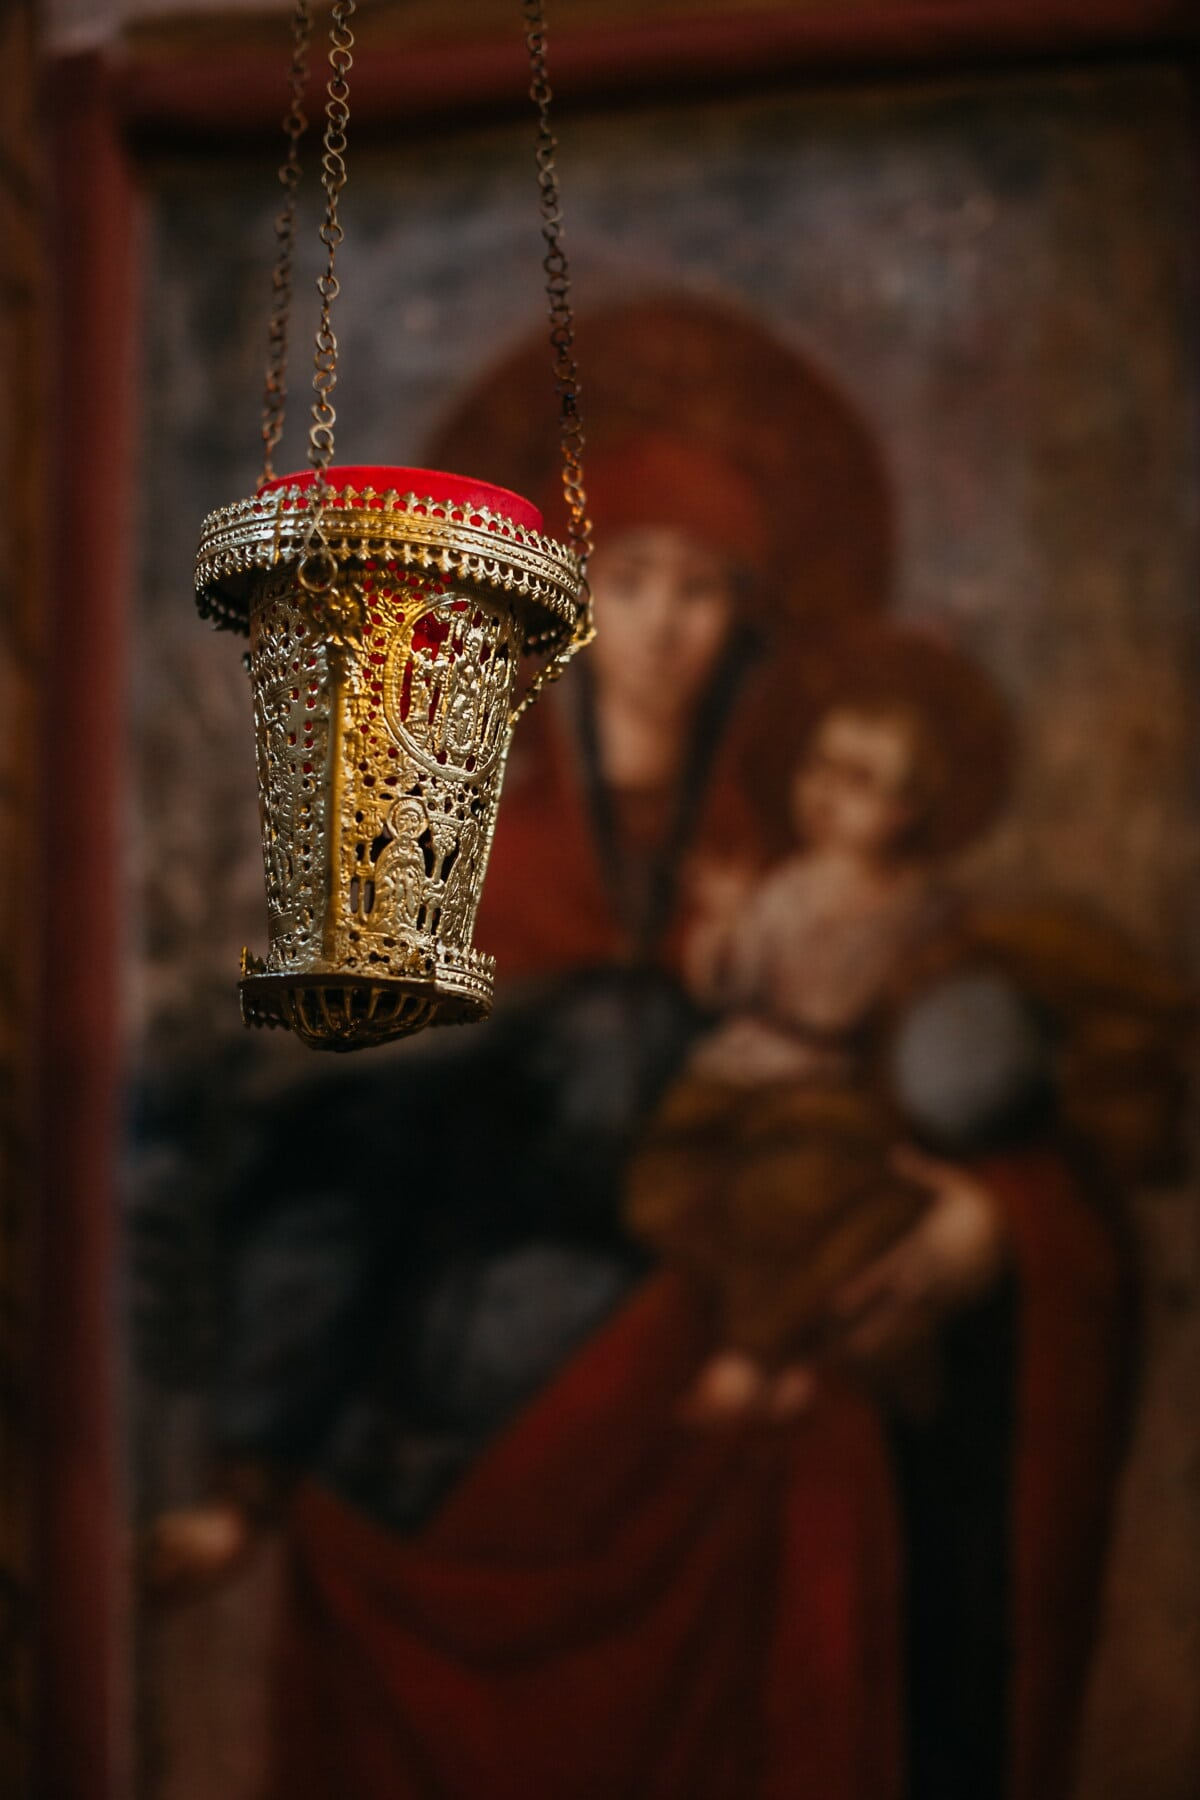 object, religious, relict, christianity, hanging, gold, religion, temple, art, monastery